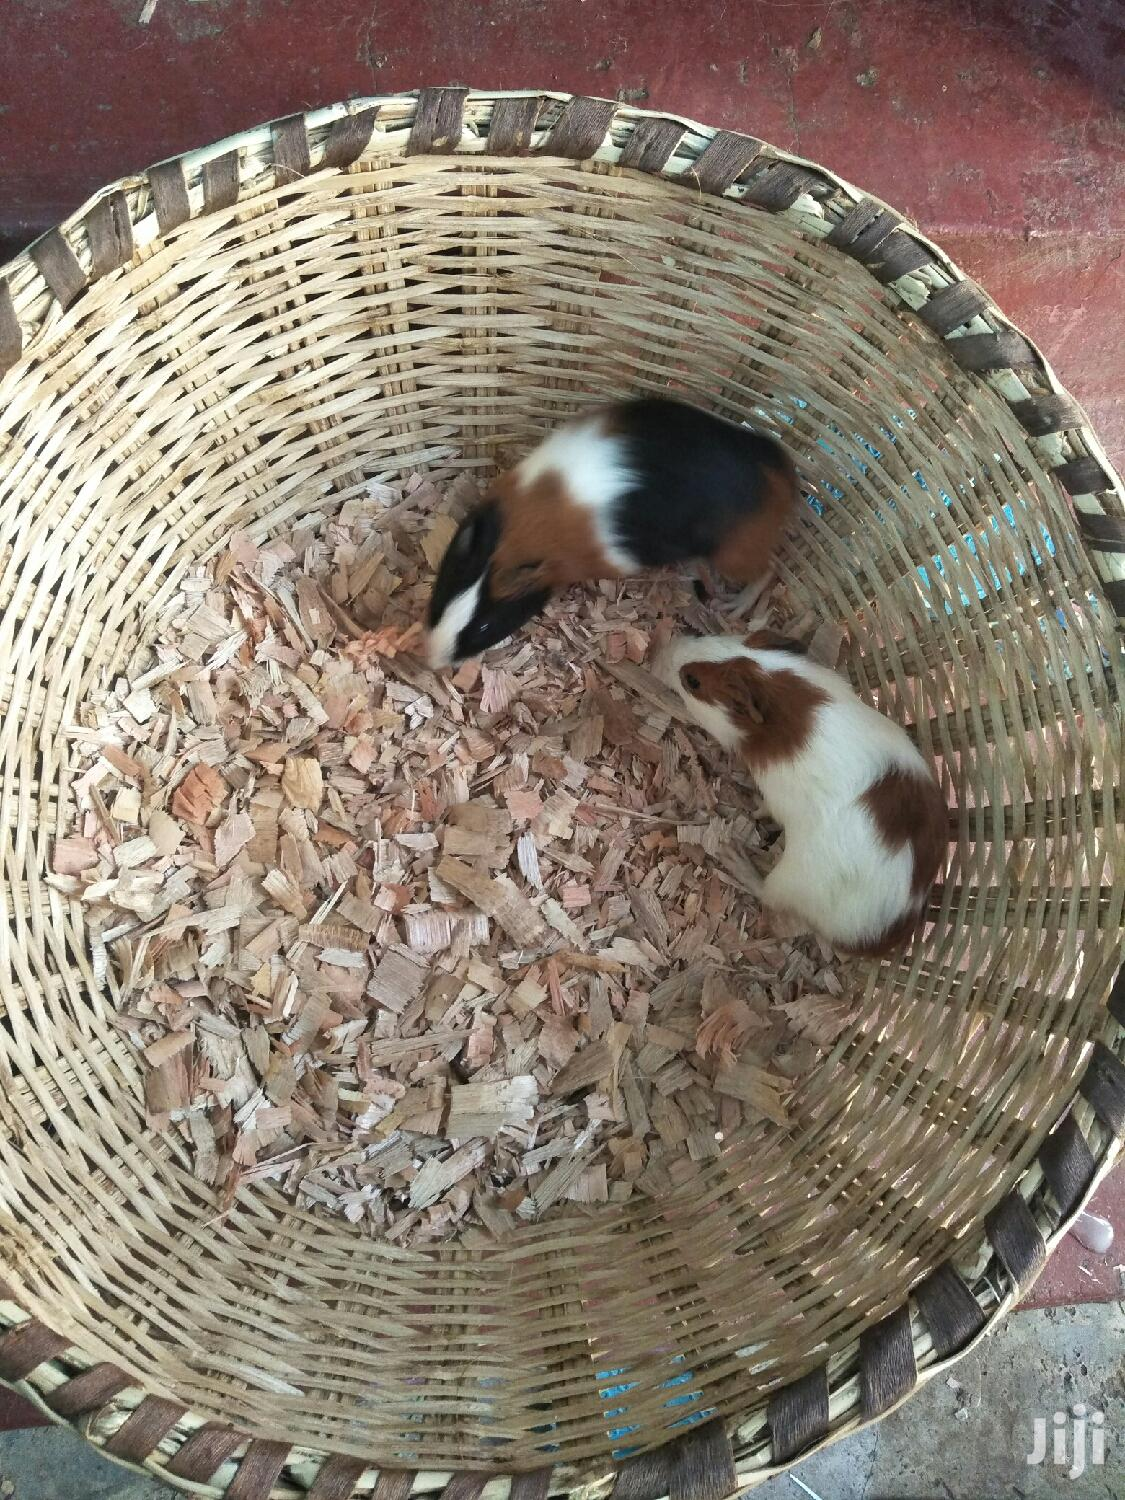 Cute Piggies And Hamsters | Other Animals for sale in Nairobi Central, Nairobi, Kenya